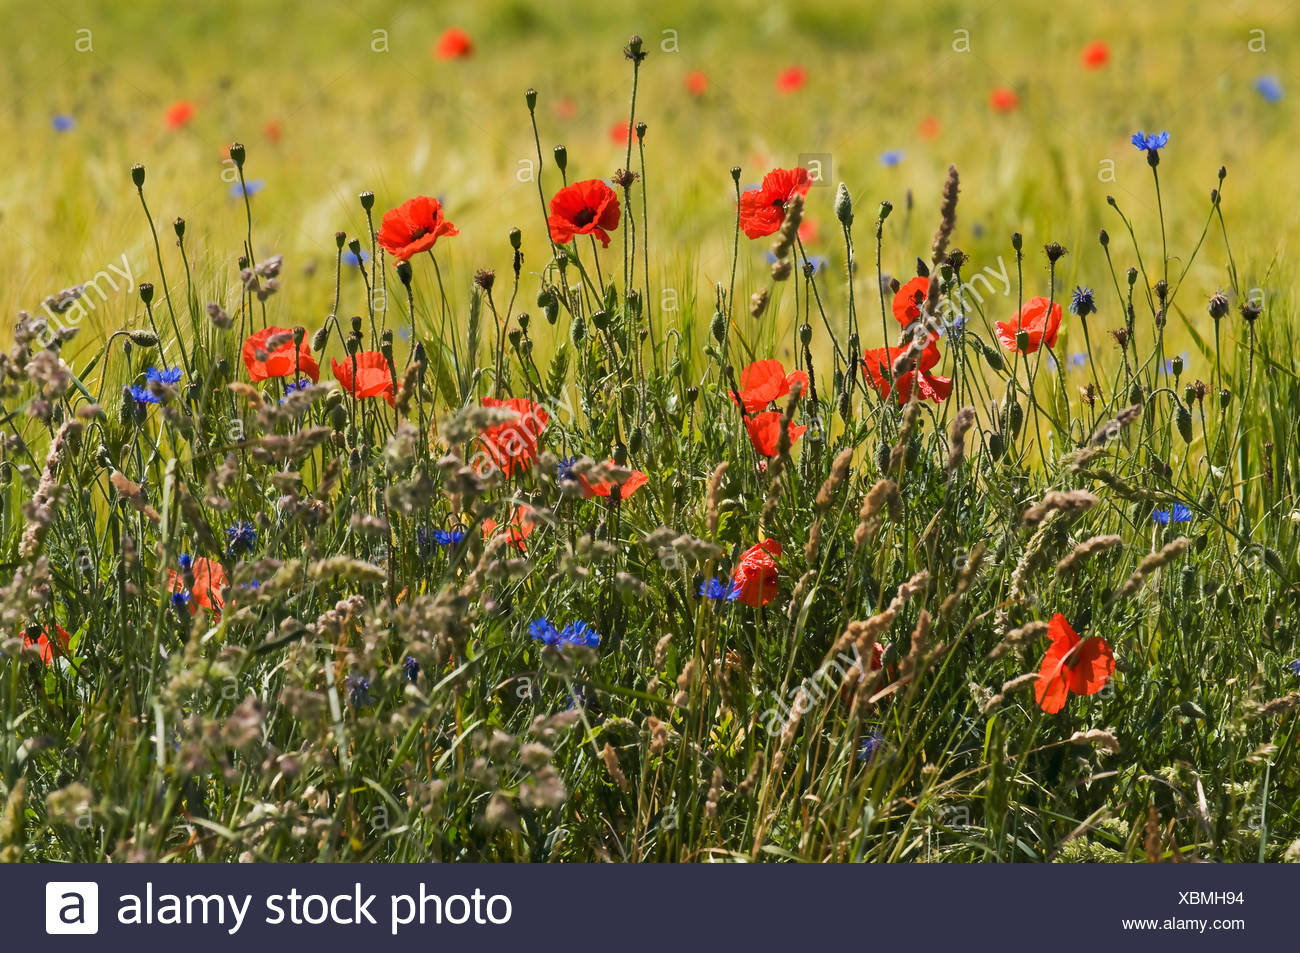 Natural edge of a field with flowering grasses and wild flowers, Poppies (Papaver rhoeas), Cornflower (Centaurea cyanus) - Stock Image